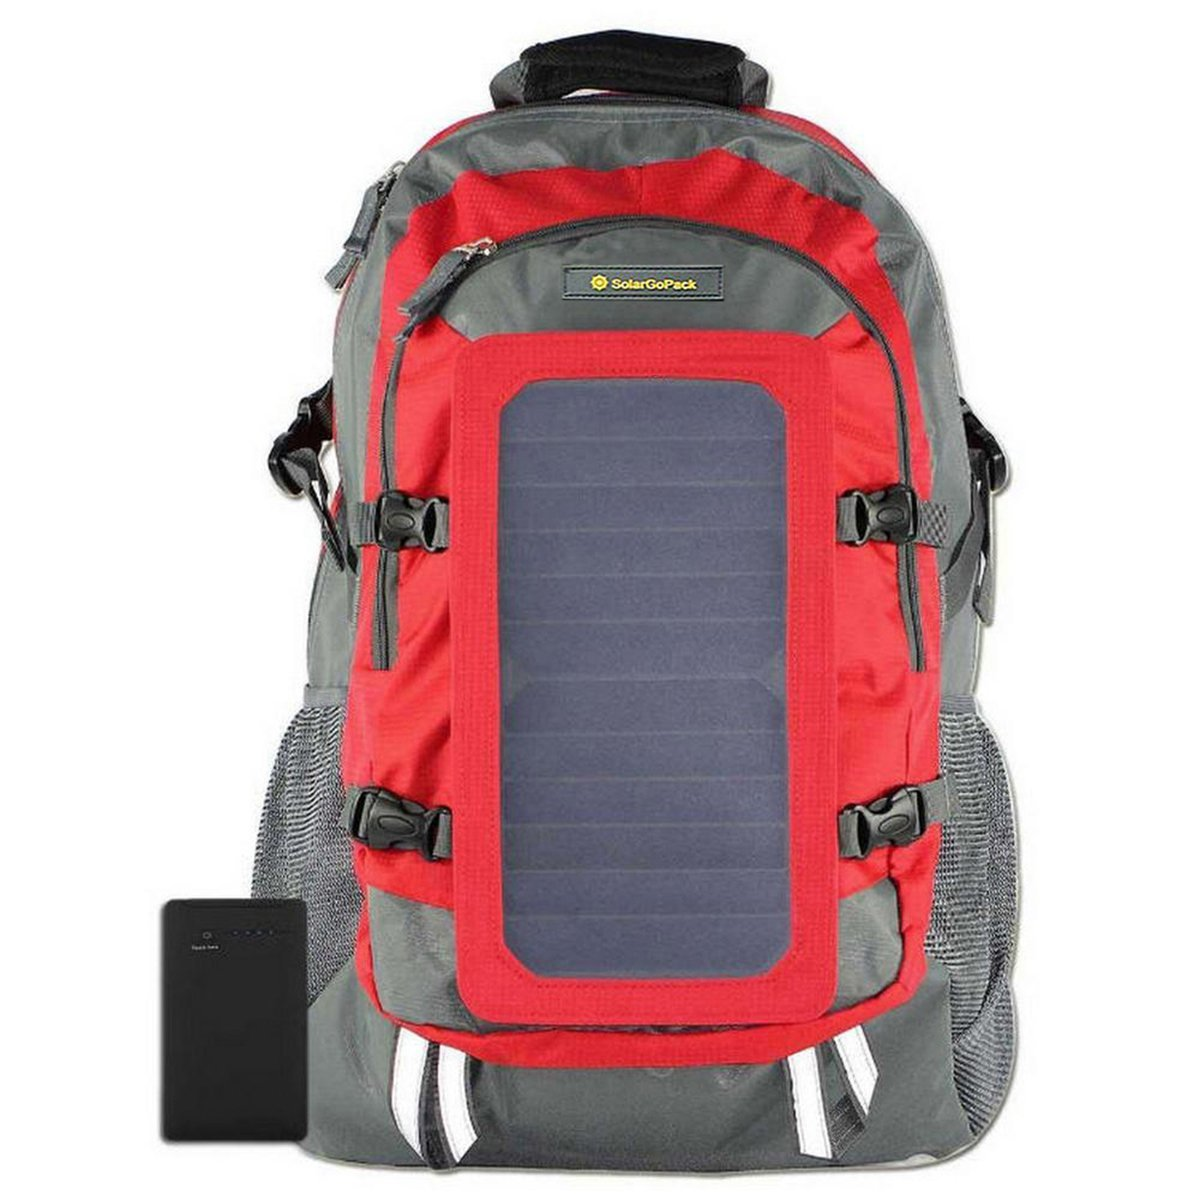 SolarGoPack Solar Powered Backpack